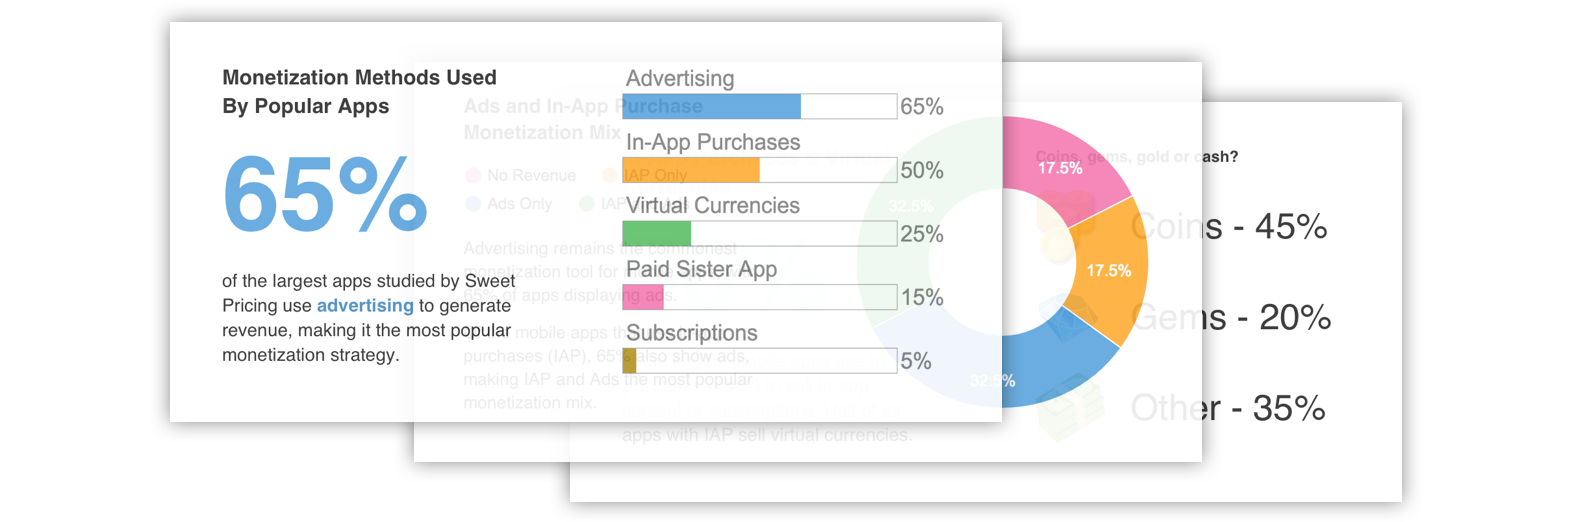 App Monetization: 7 Stats From a Study of Popular Mobile Apps